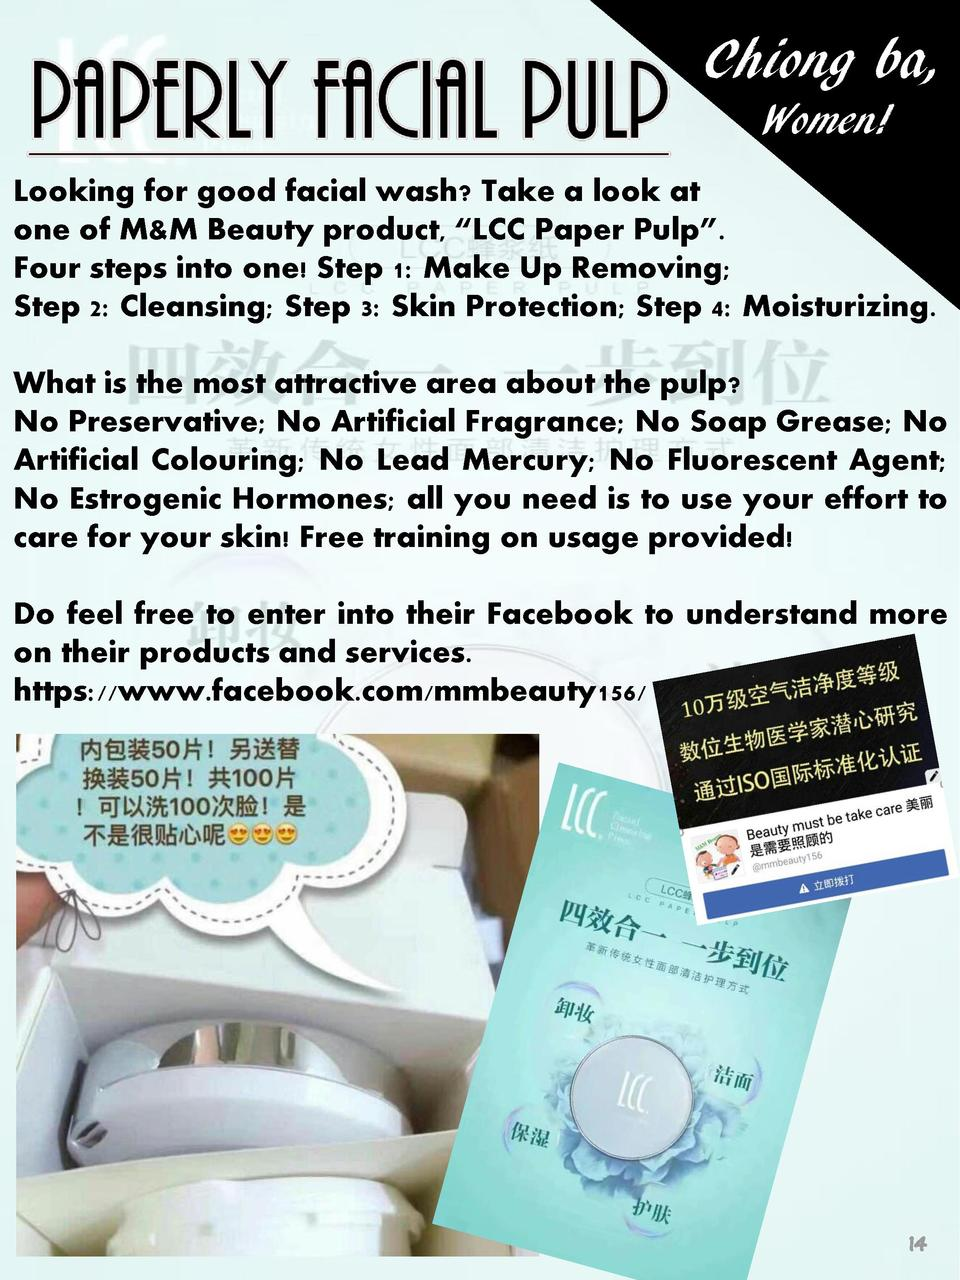 Chiong ba, Women  Looking for good facial wash  Take a look at one of M M Beauty product,    LCC Paper Pulp   . Four steps...